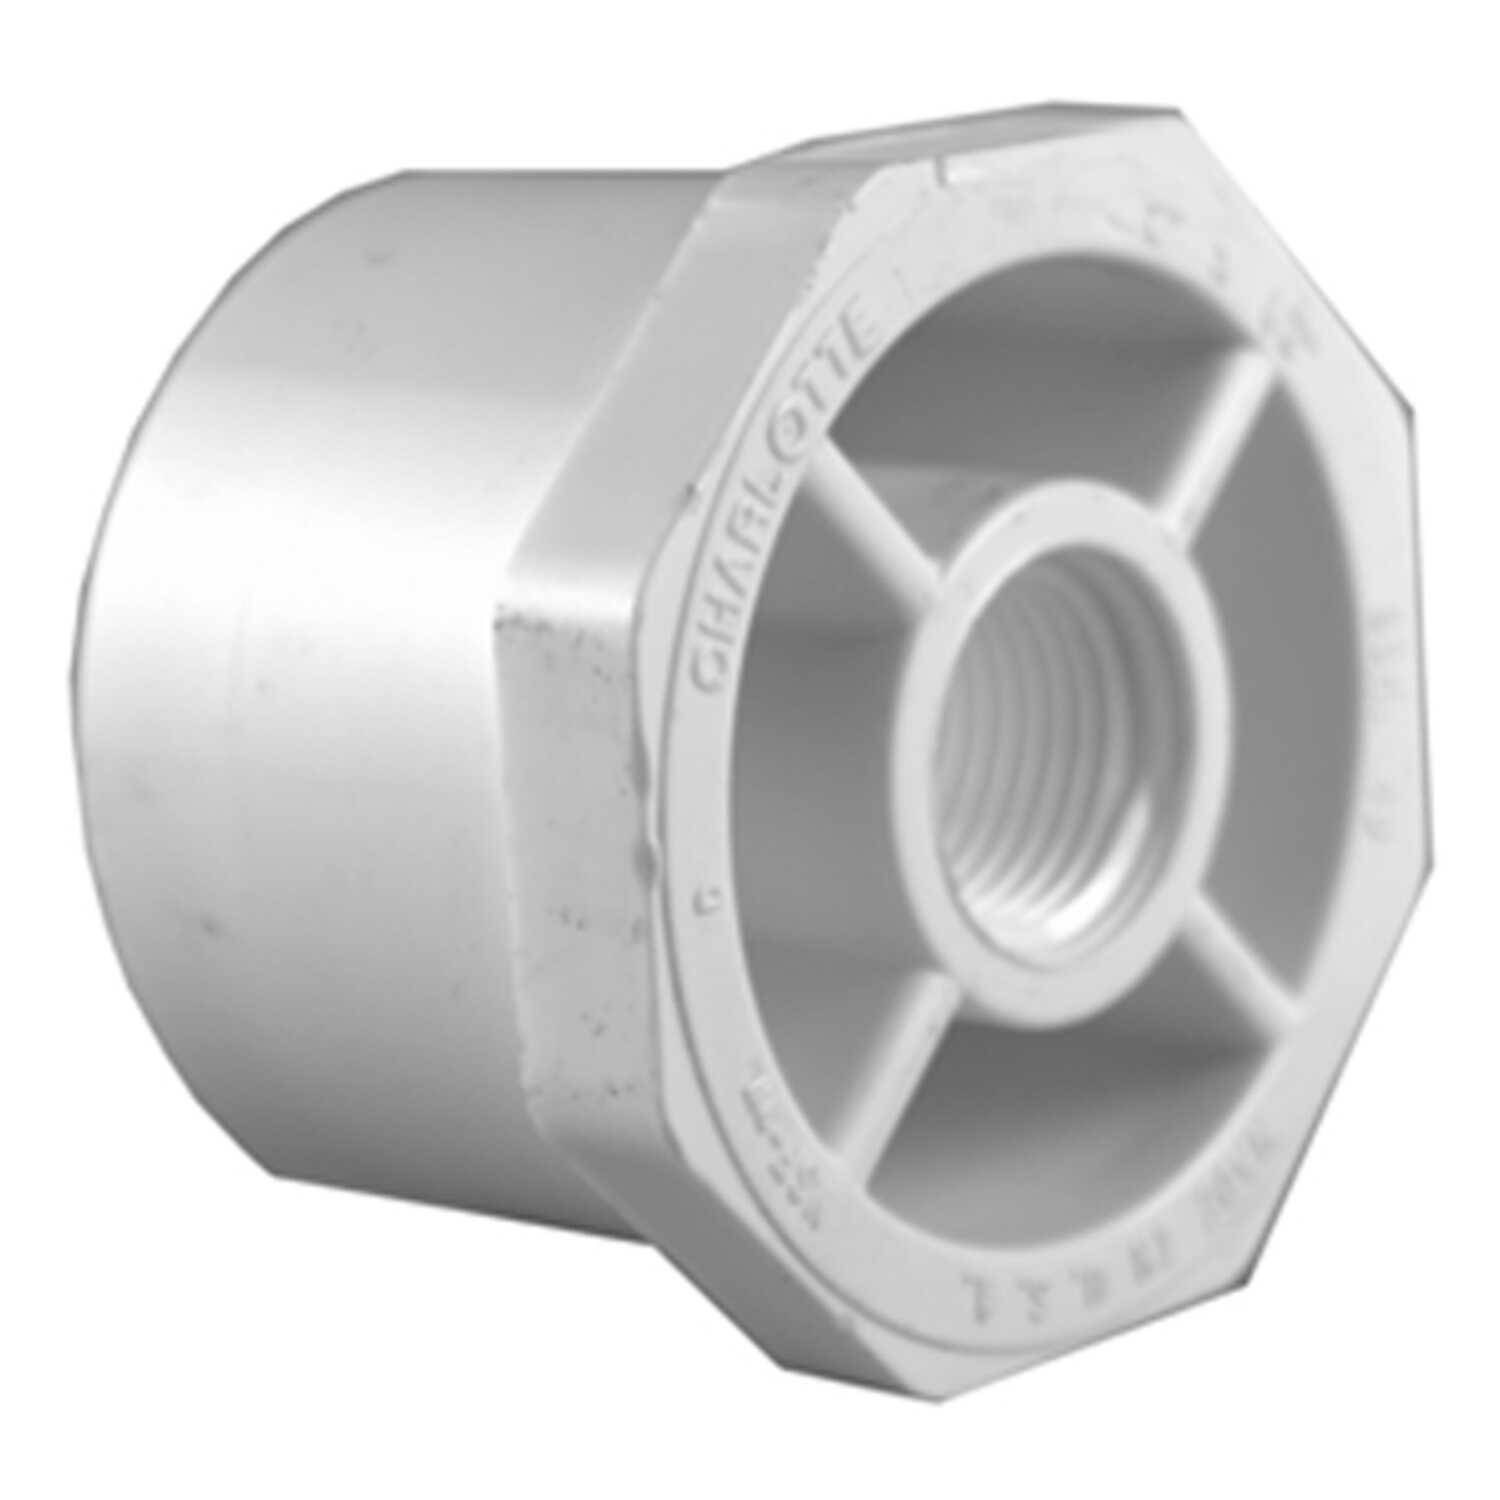 Charlotte Pipe  Schedule 40  3 in. Spigot   x 2 in. Dia. FPT  PVC  Reducing Bushing